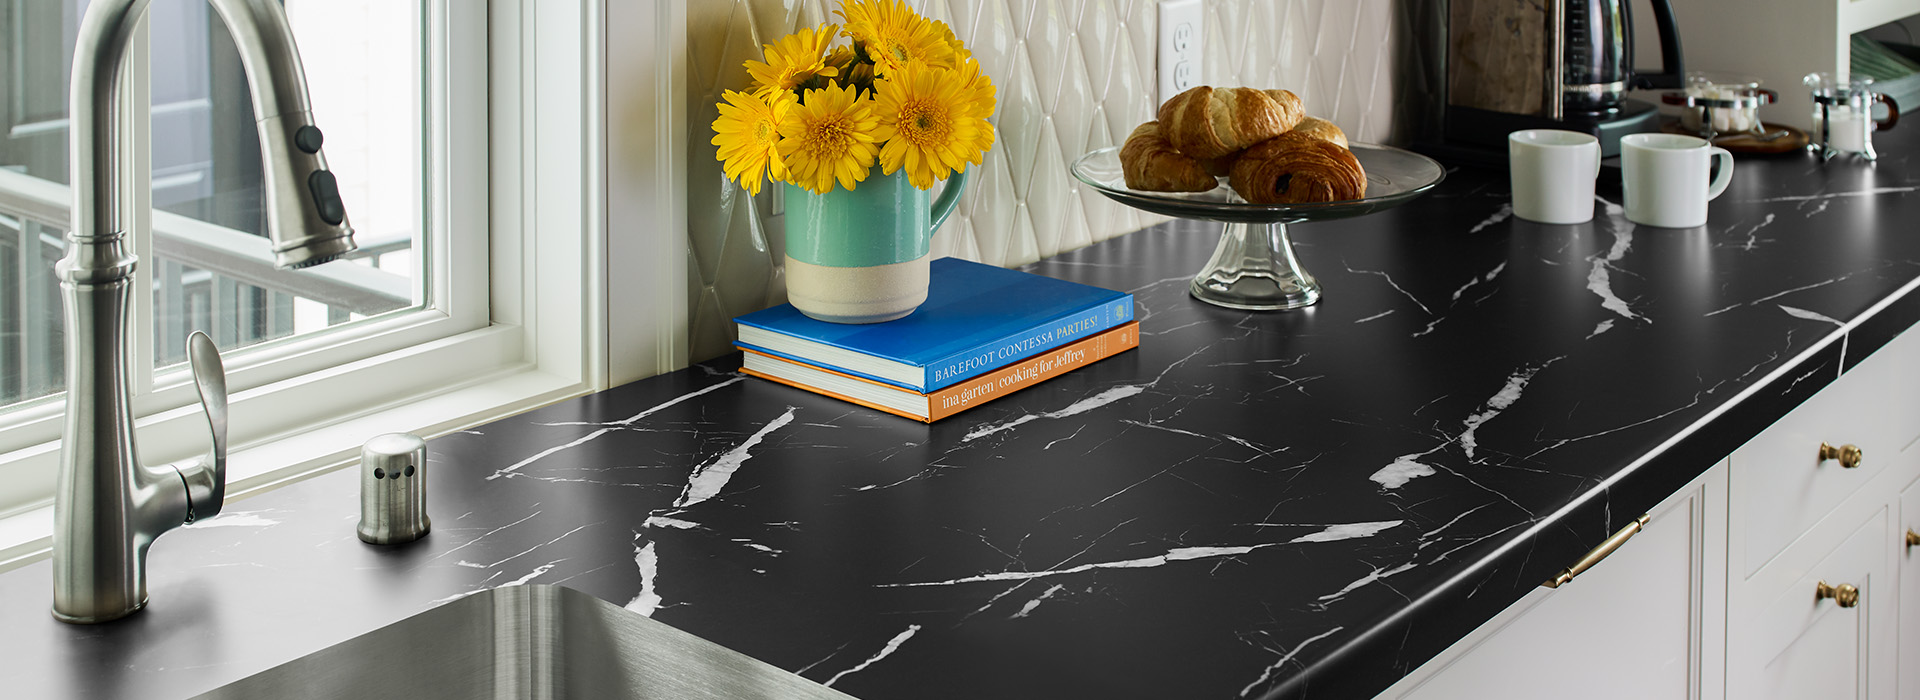 Kitchen countertop with yellow flowers and bread 7403 Nero Marquina 180fx